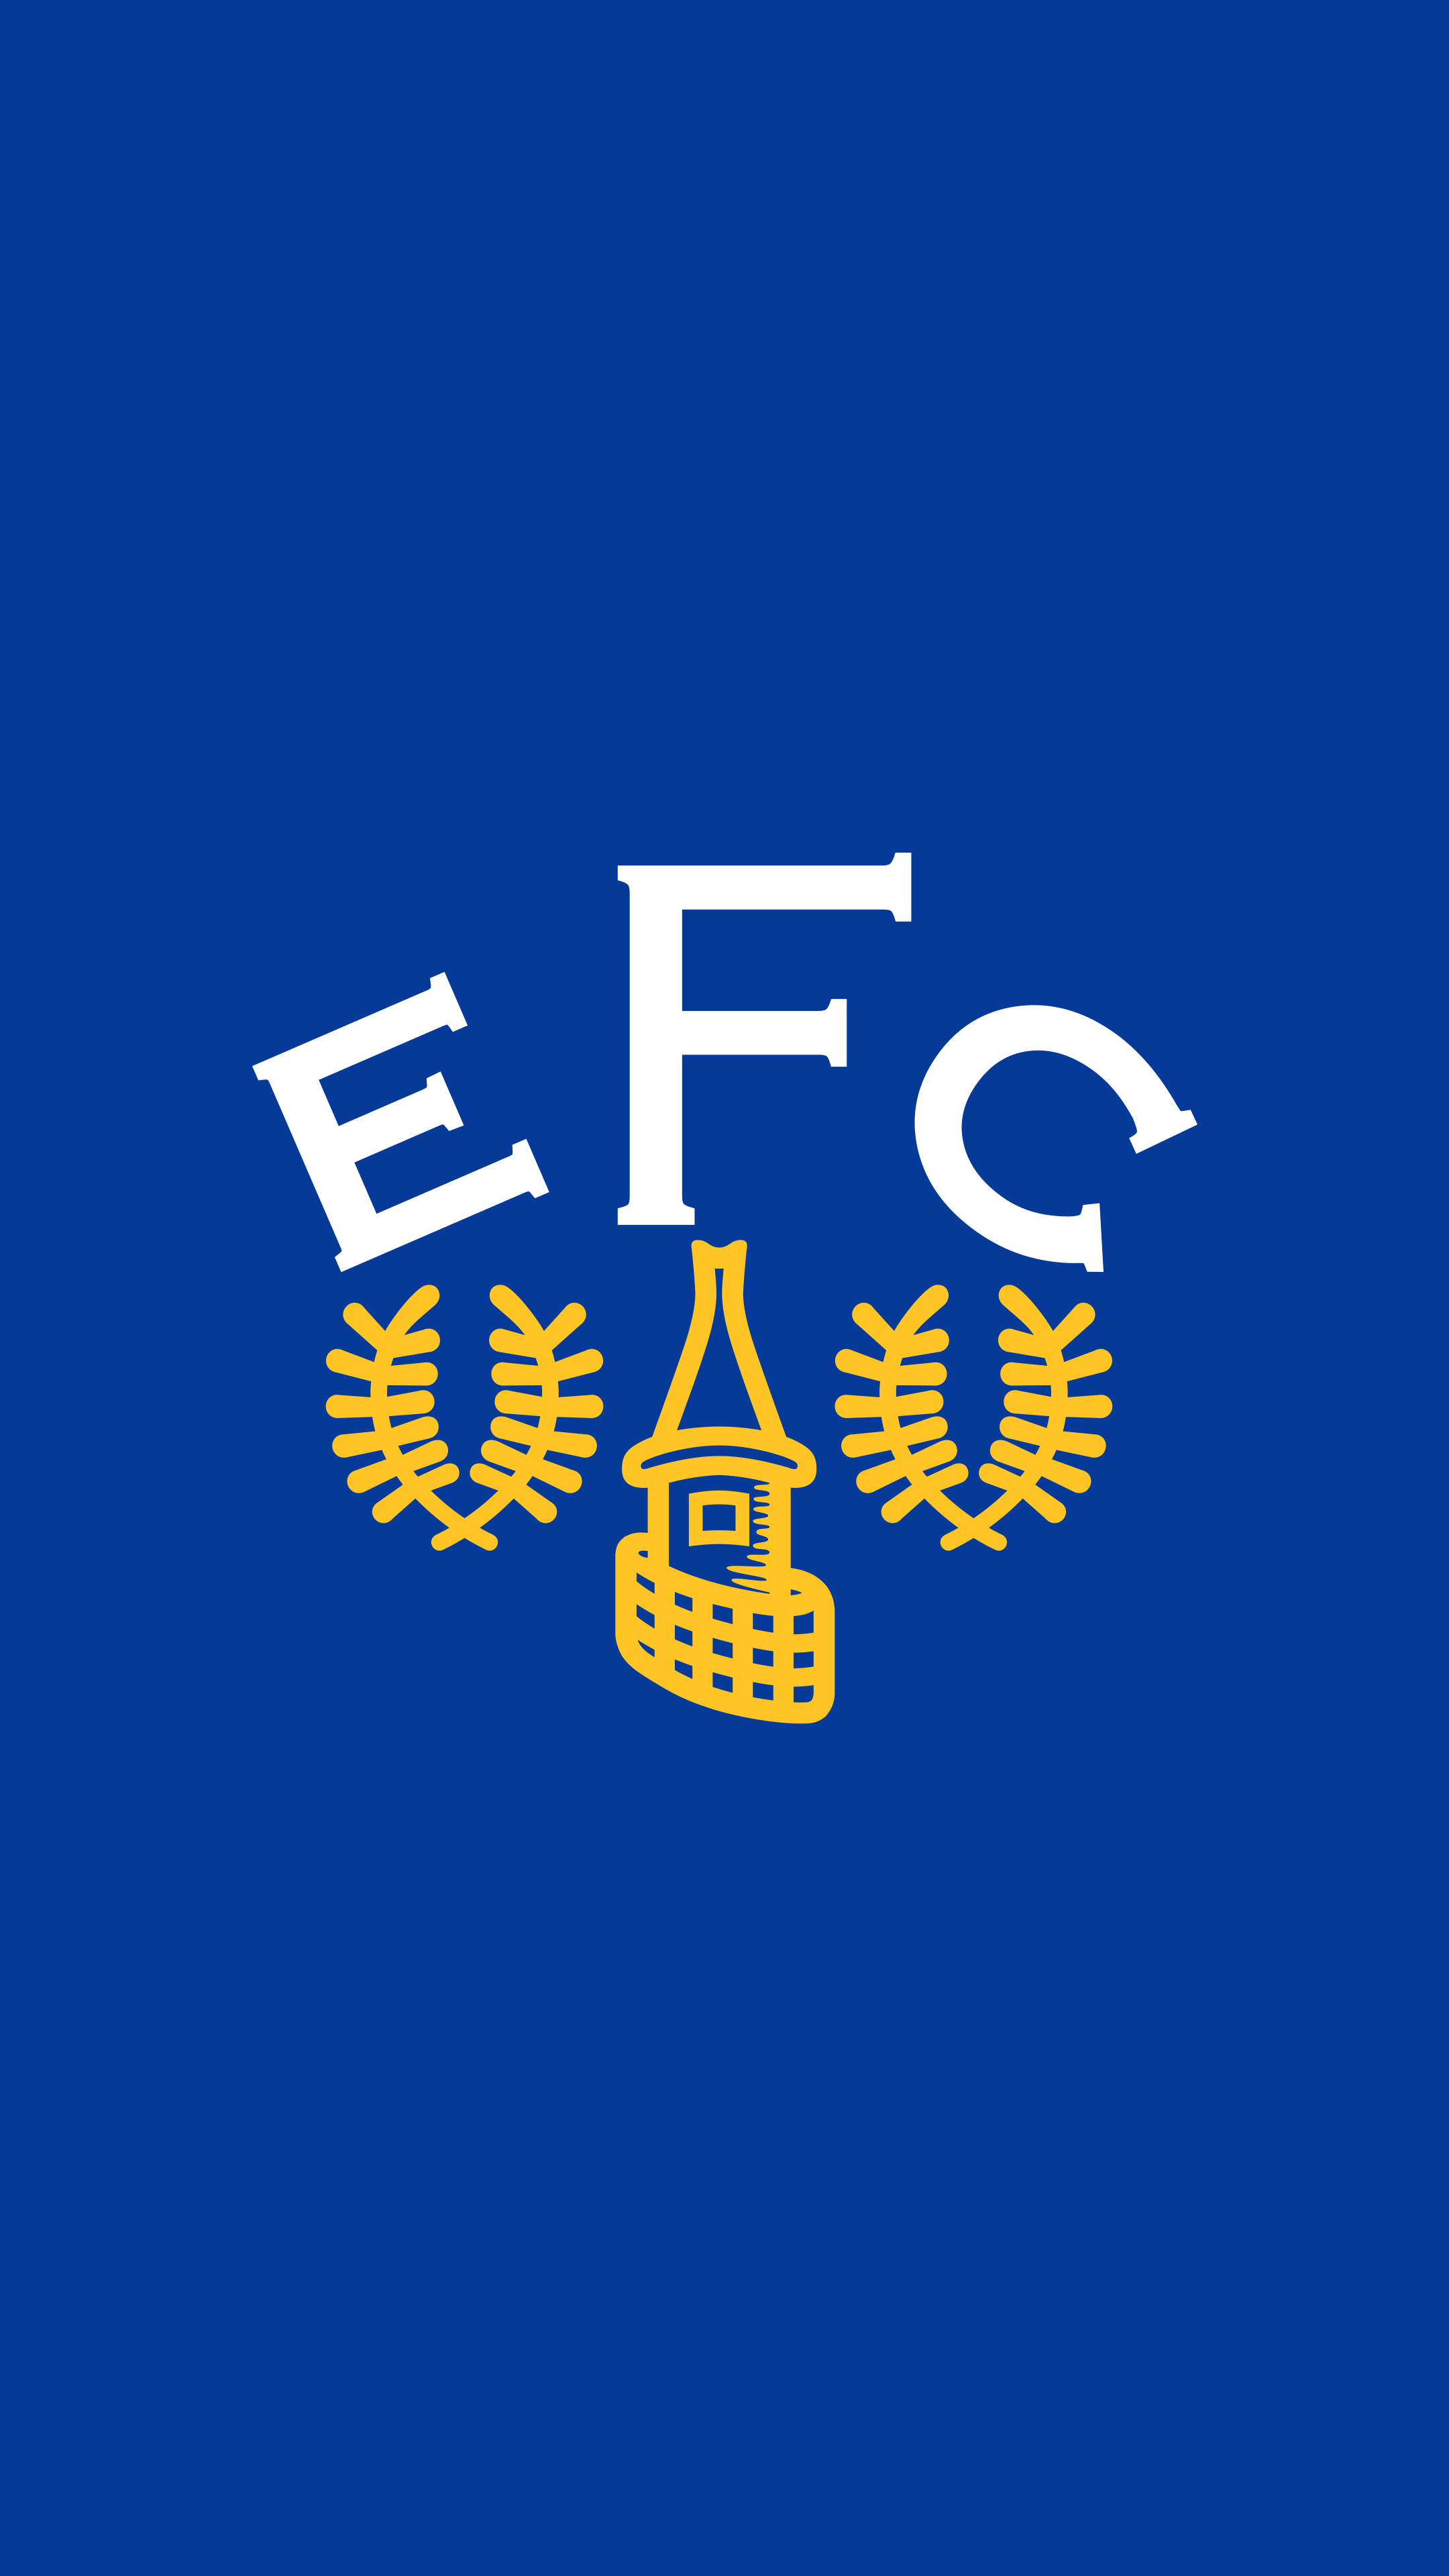 Everton wallpaper Football Club National Team Logos Everton 2160x3840